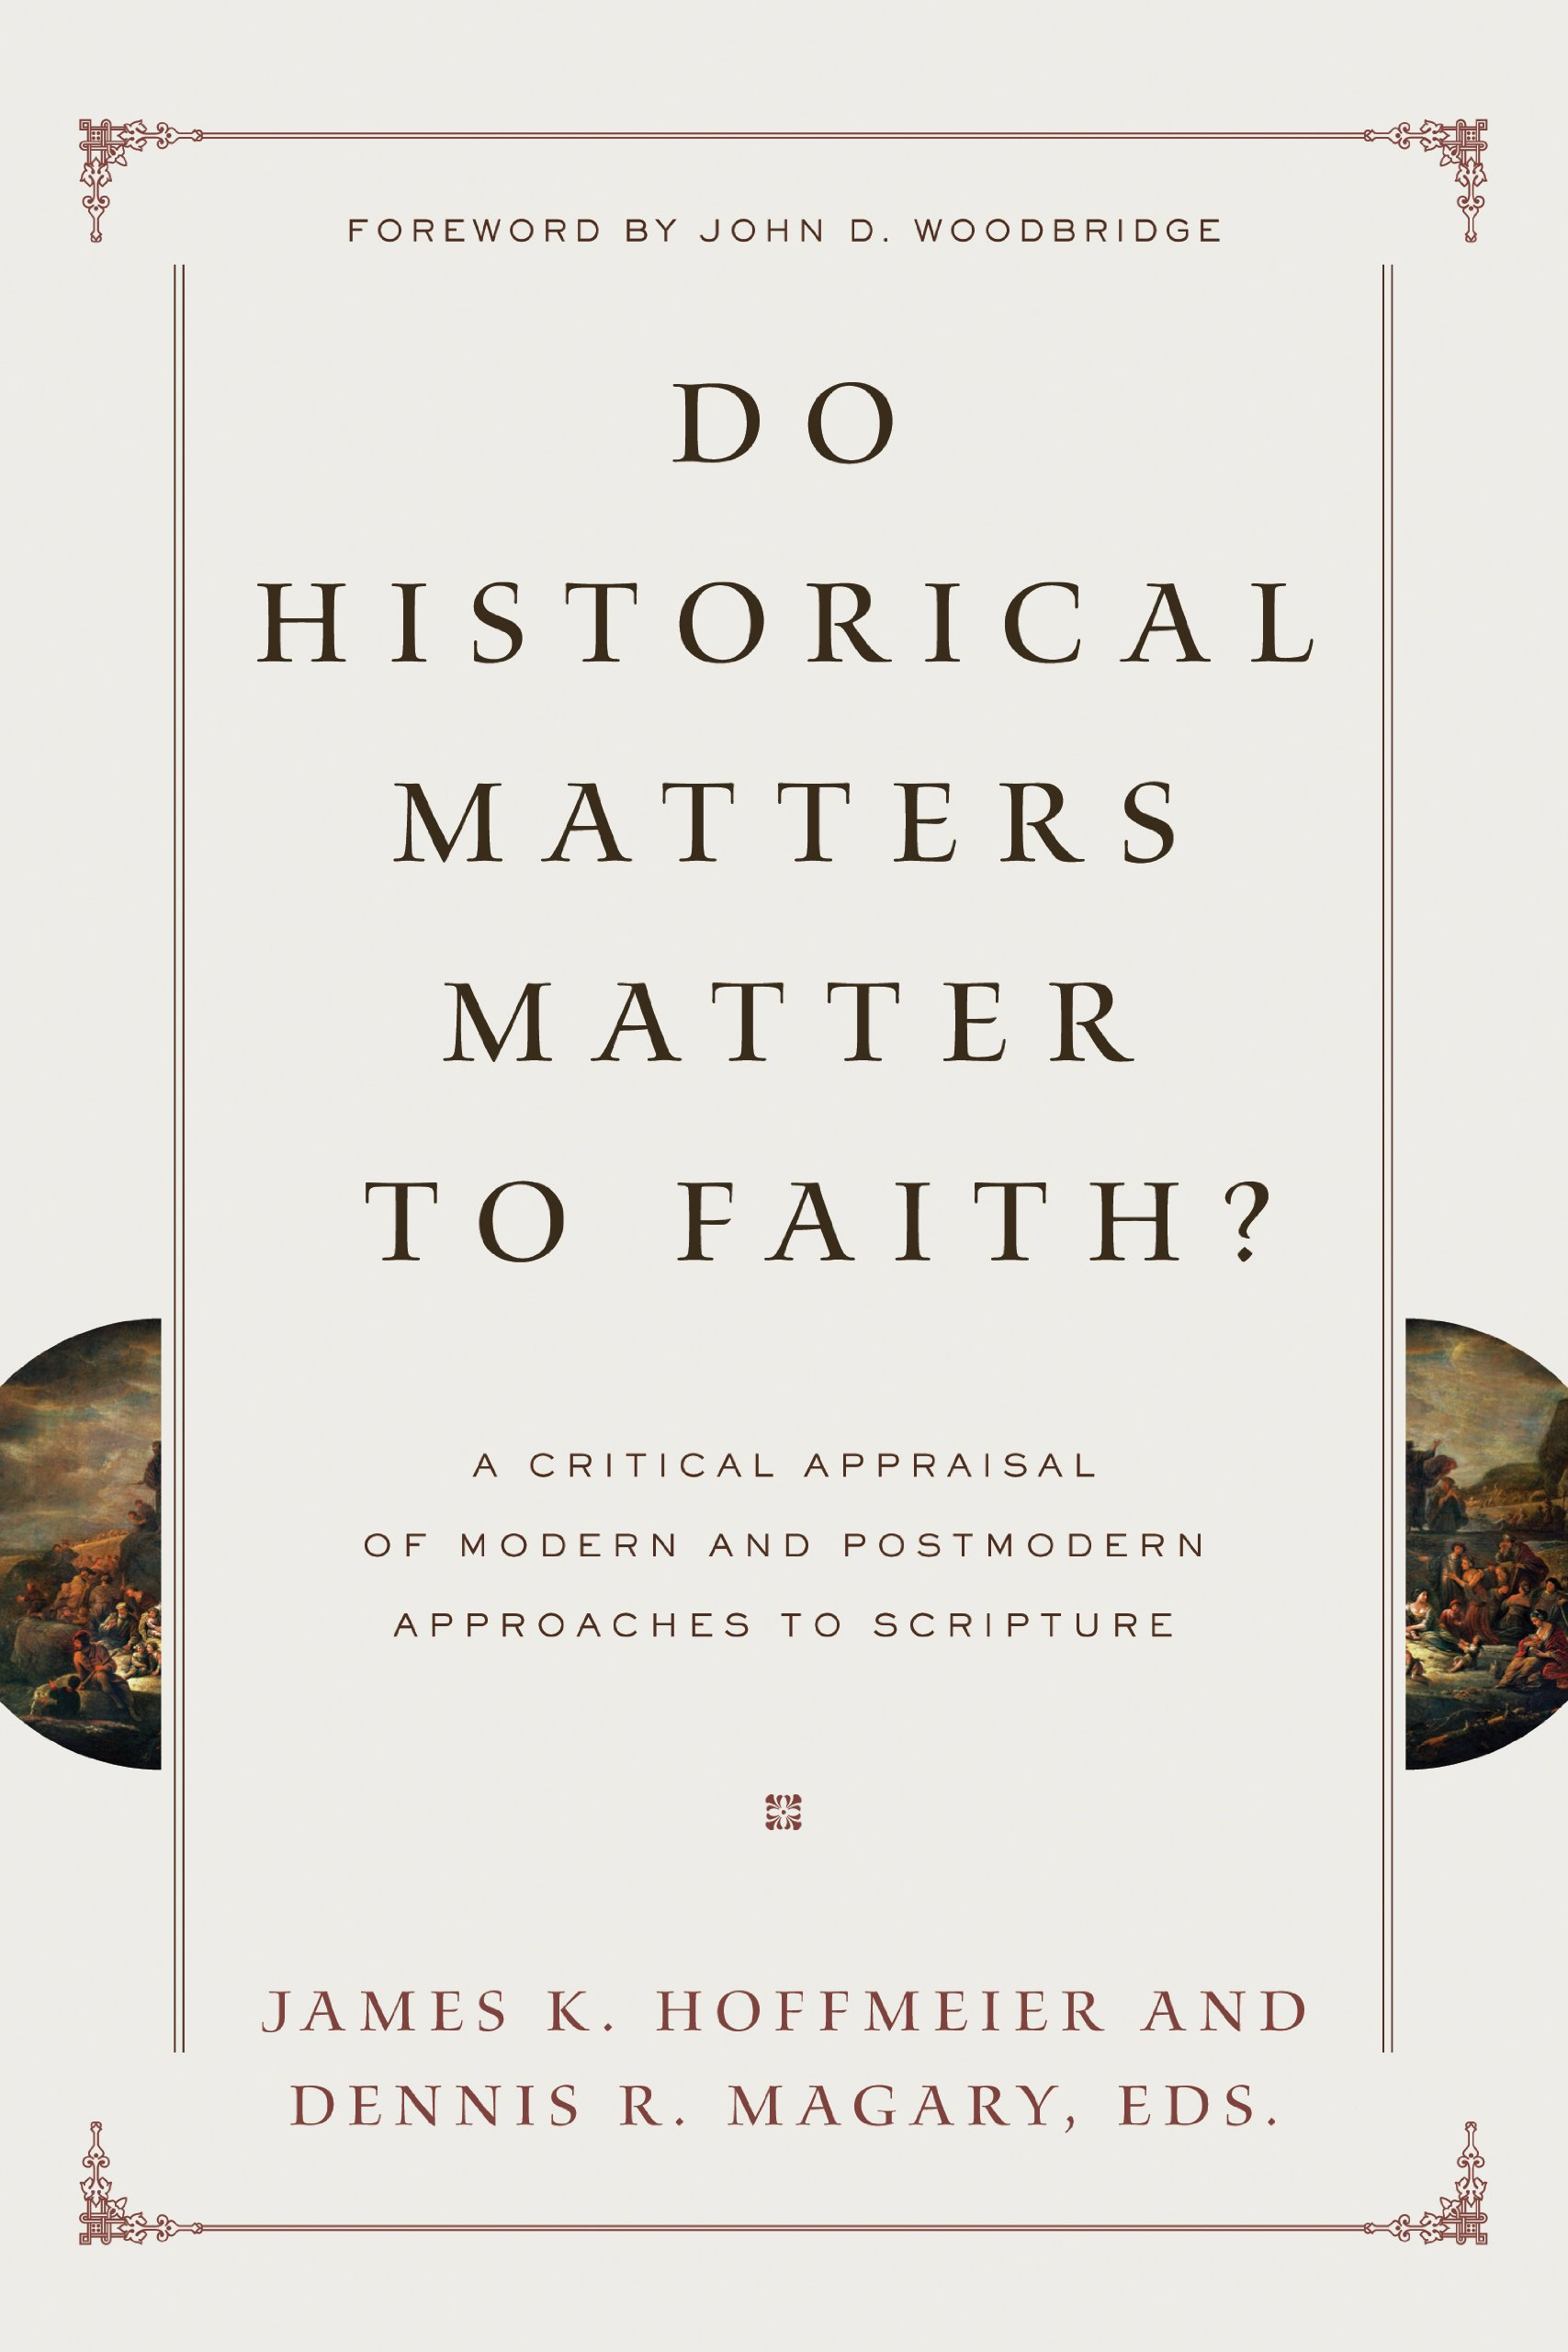 Do historical matters matter to faith a critical appraisal of a critical appraisal of modern and postmodern approaches to scripture darrell l bock james k hoffmeier dennis r magary 9781433525711 amazon fandeluxe Choice Image